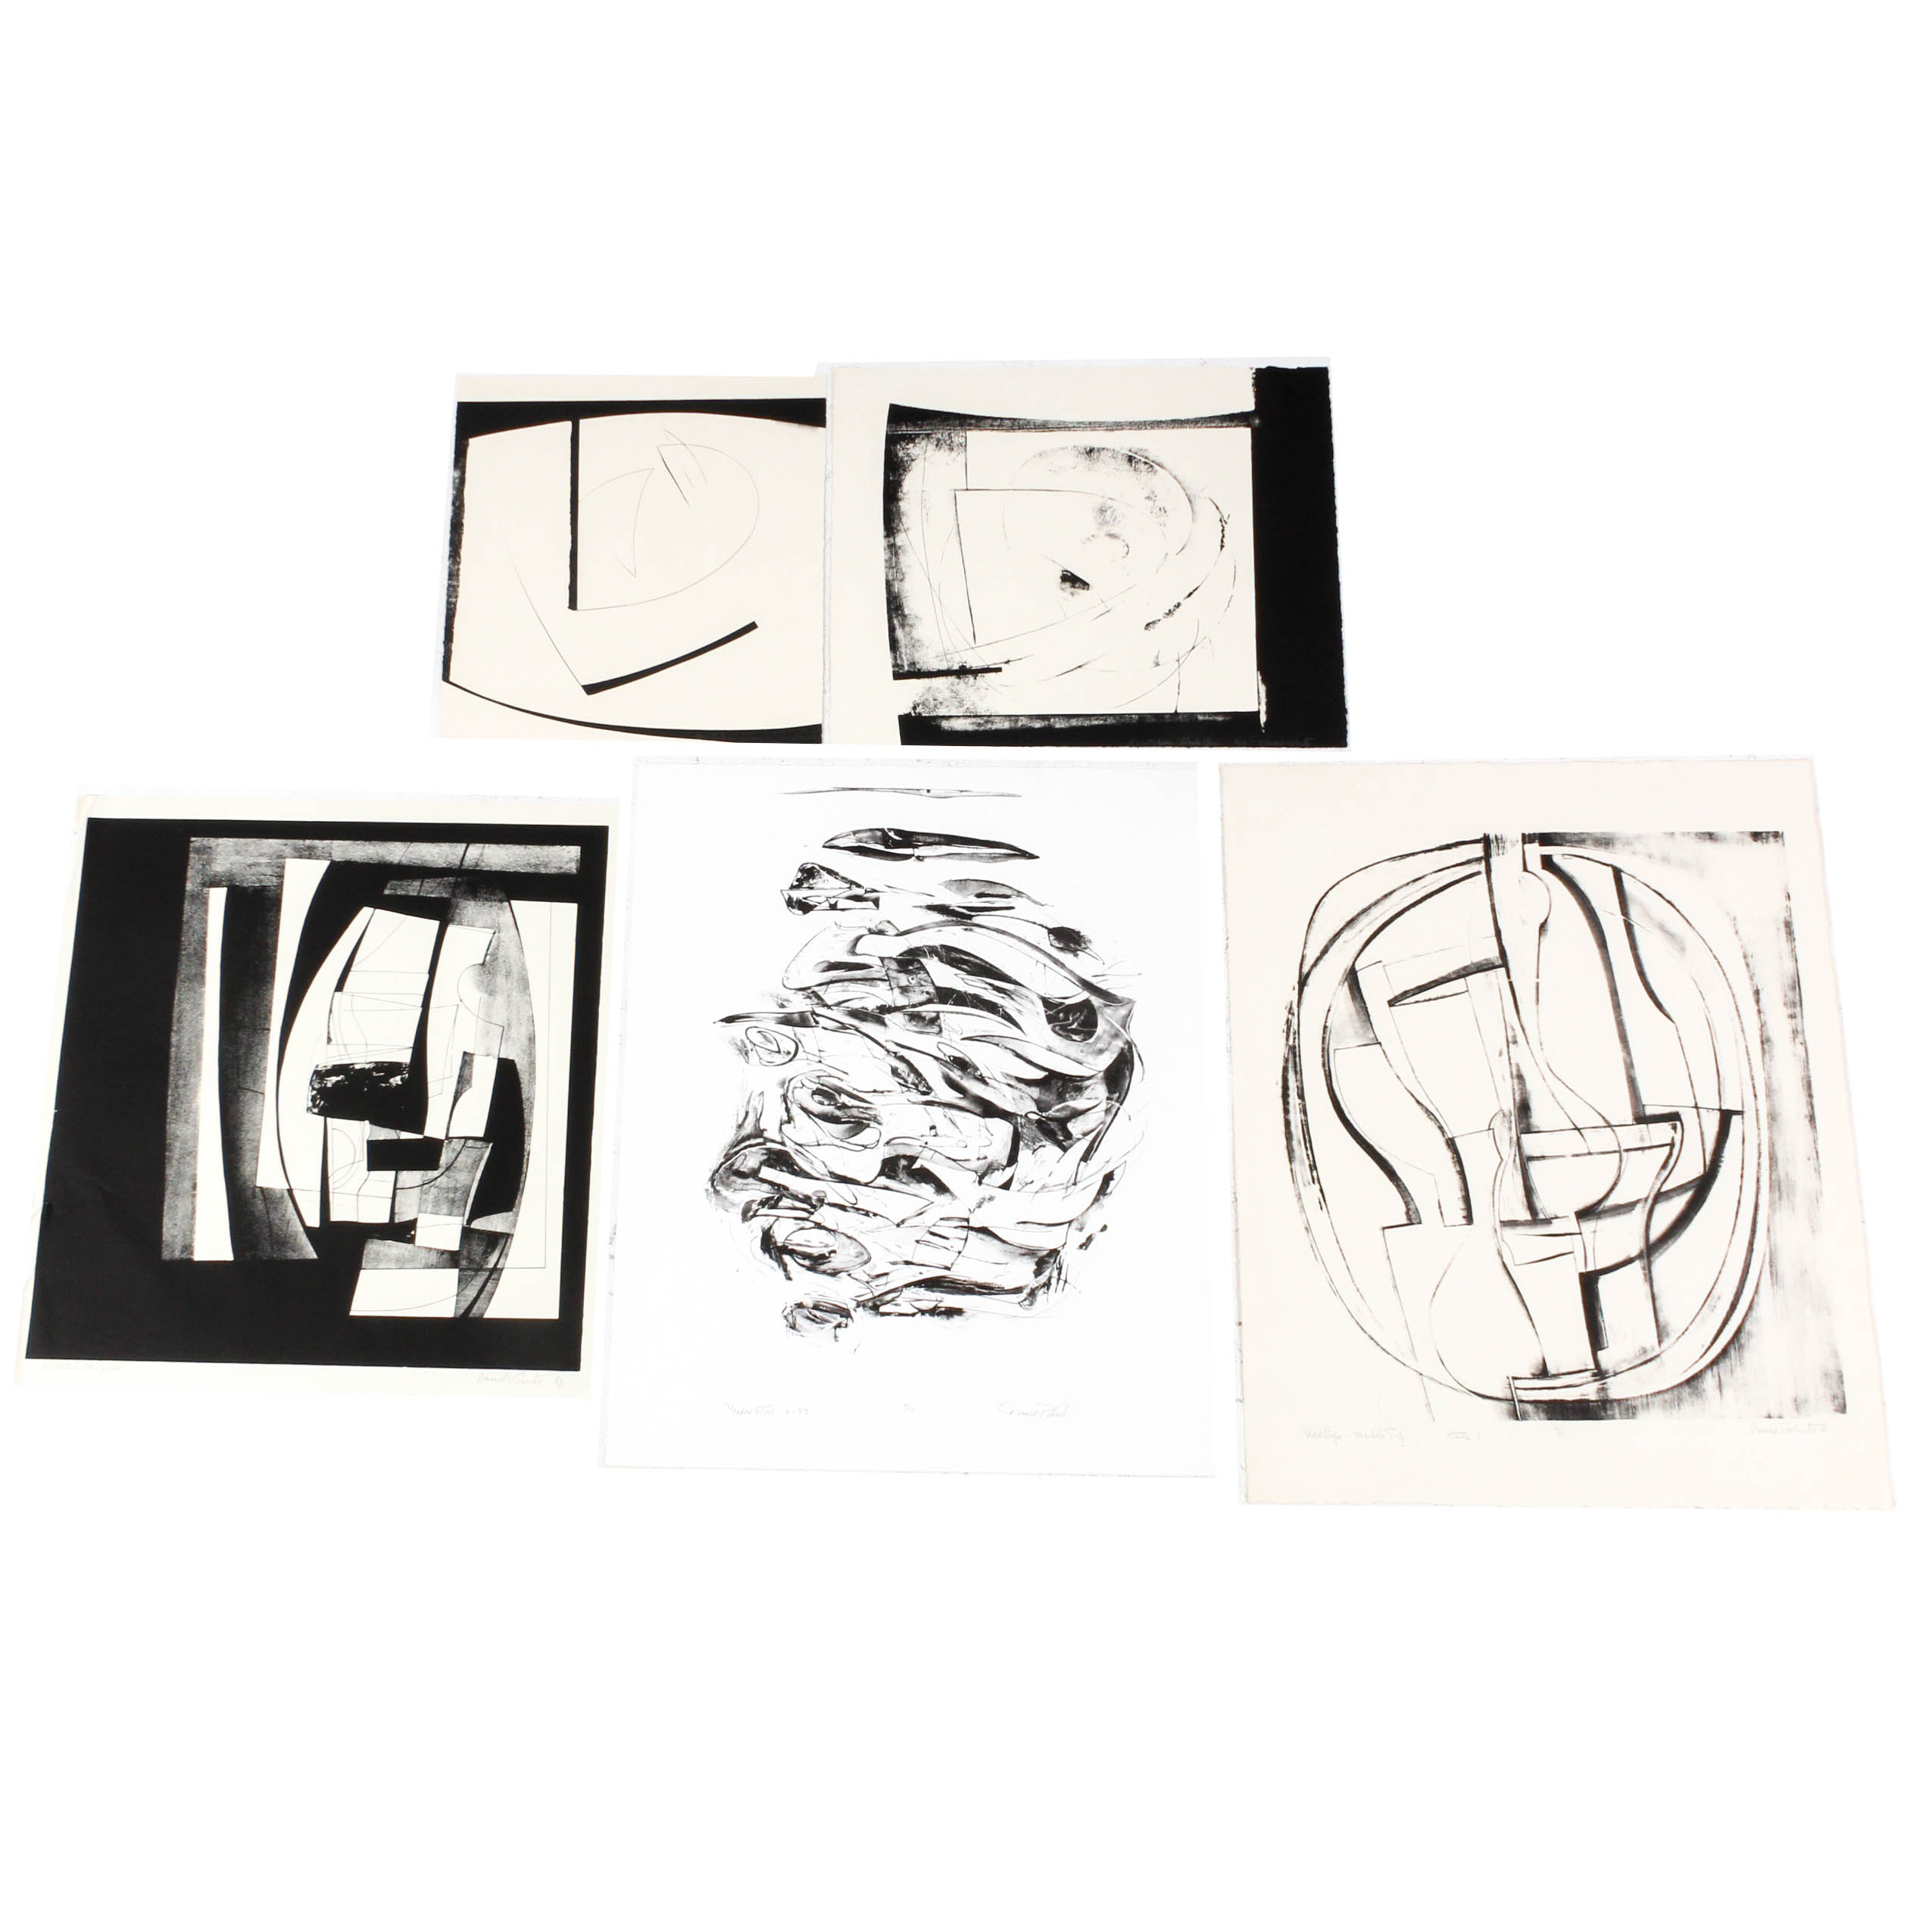 Donald Roberts 1960s Black and White Lithographic Artworks